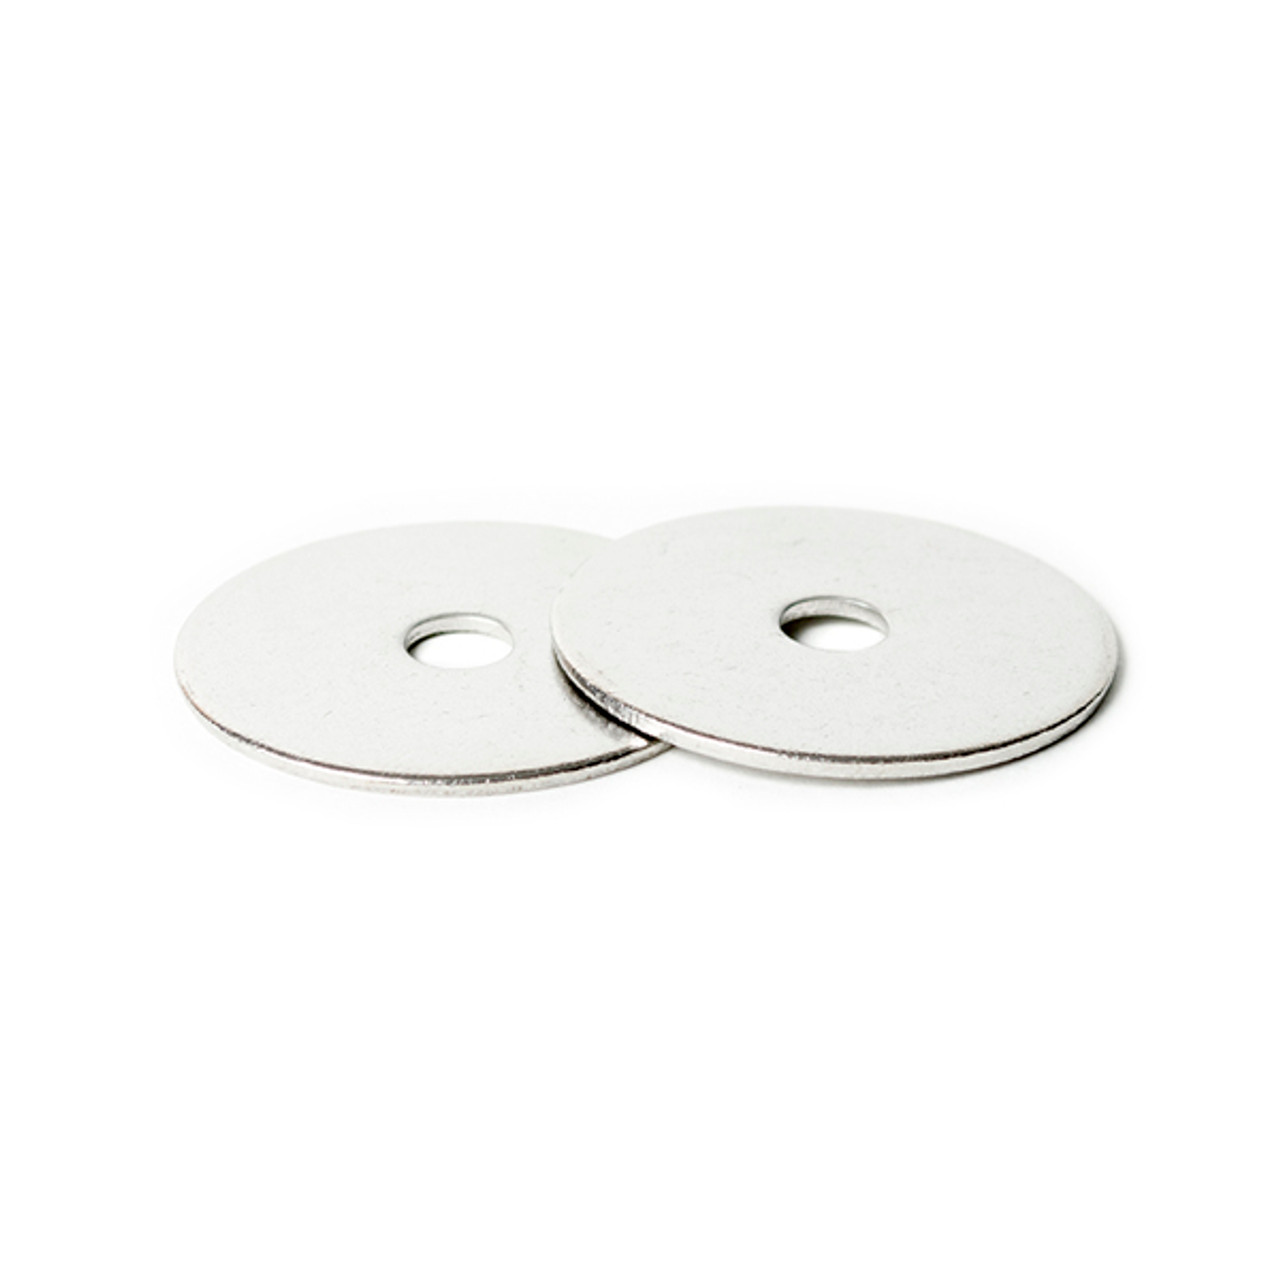 Stainless Steel Fender Washer 3//8 x 1-1//4 Qty 250